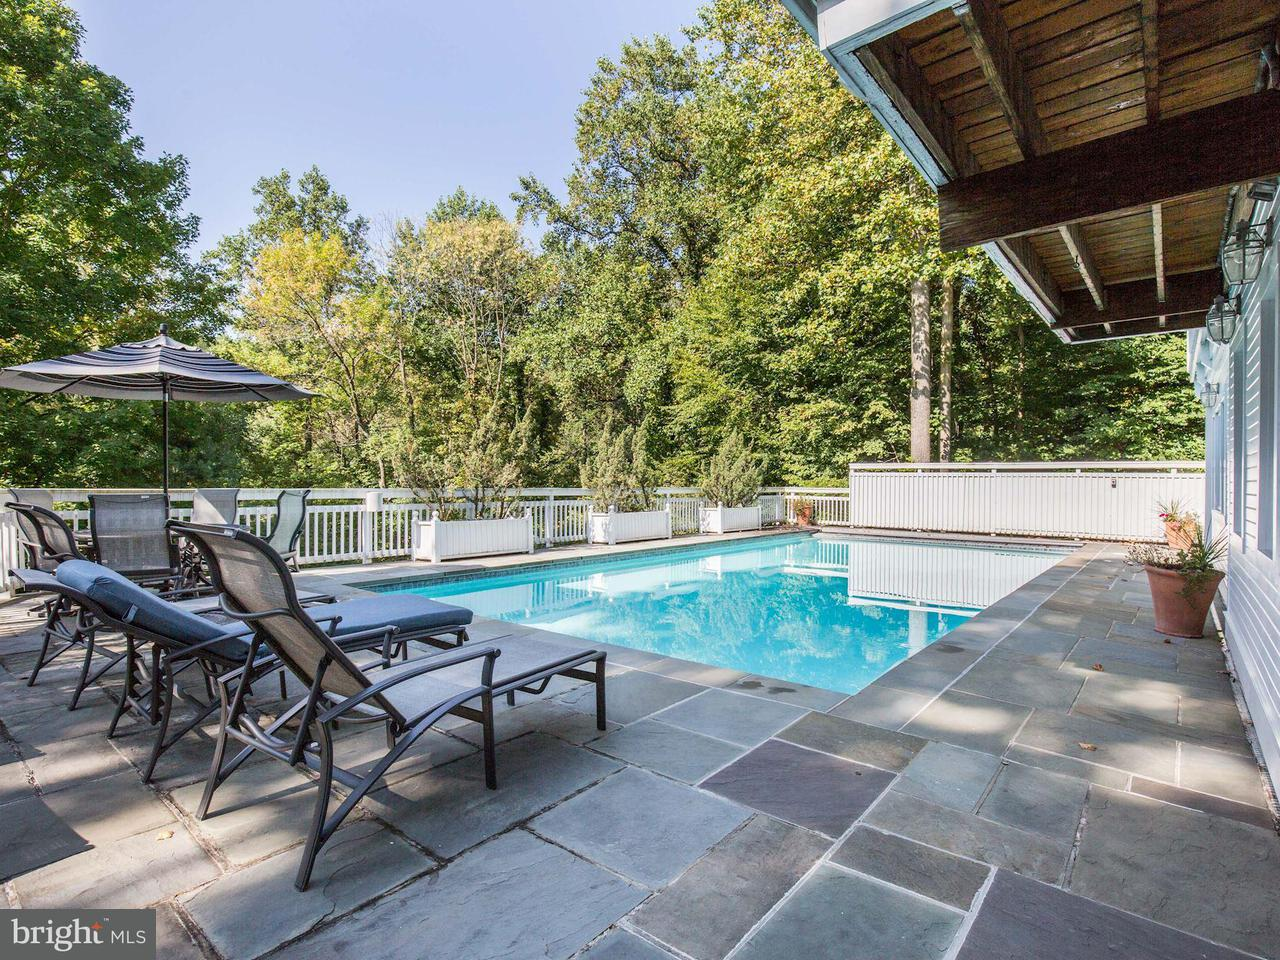 Single Family Home for Sale at 6500 Tall Tree Ter 6500 Tall Tree Ter North Bethesda, Maryland 20852 United States